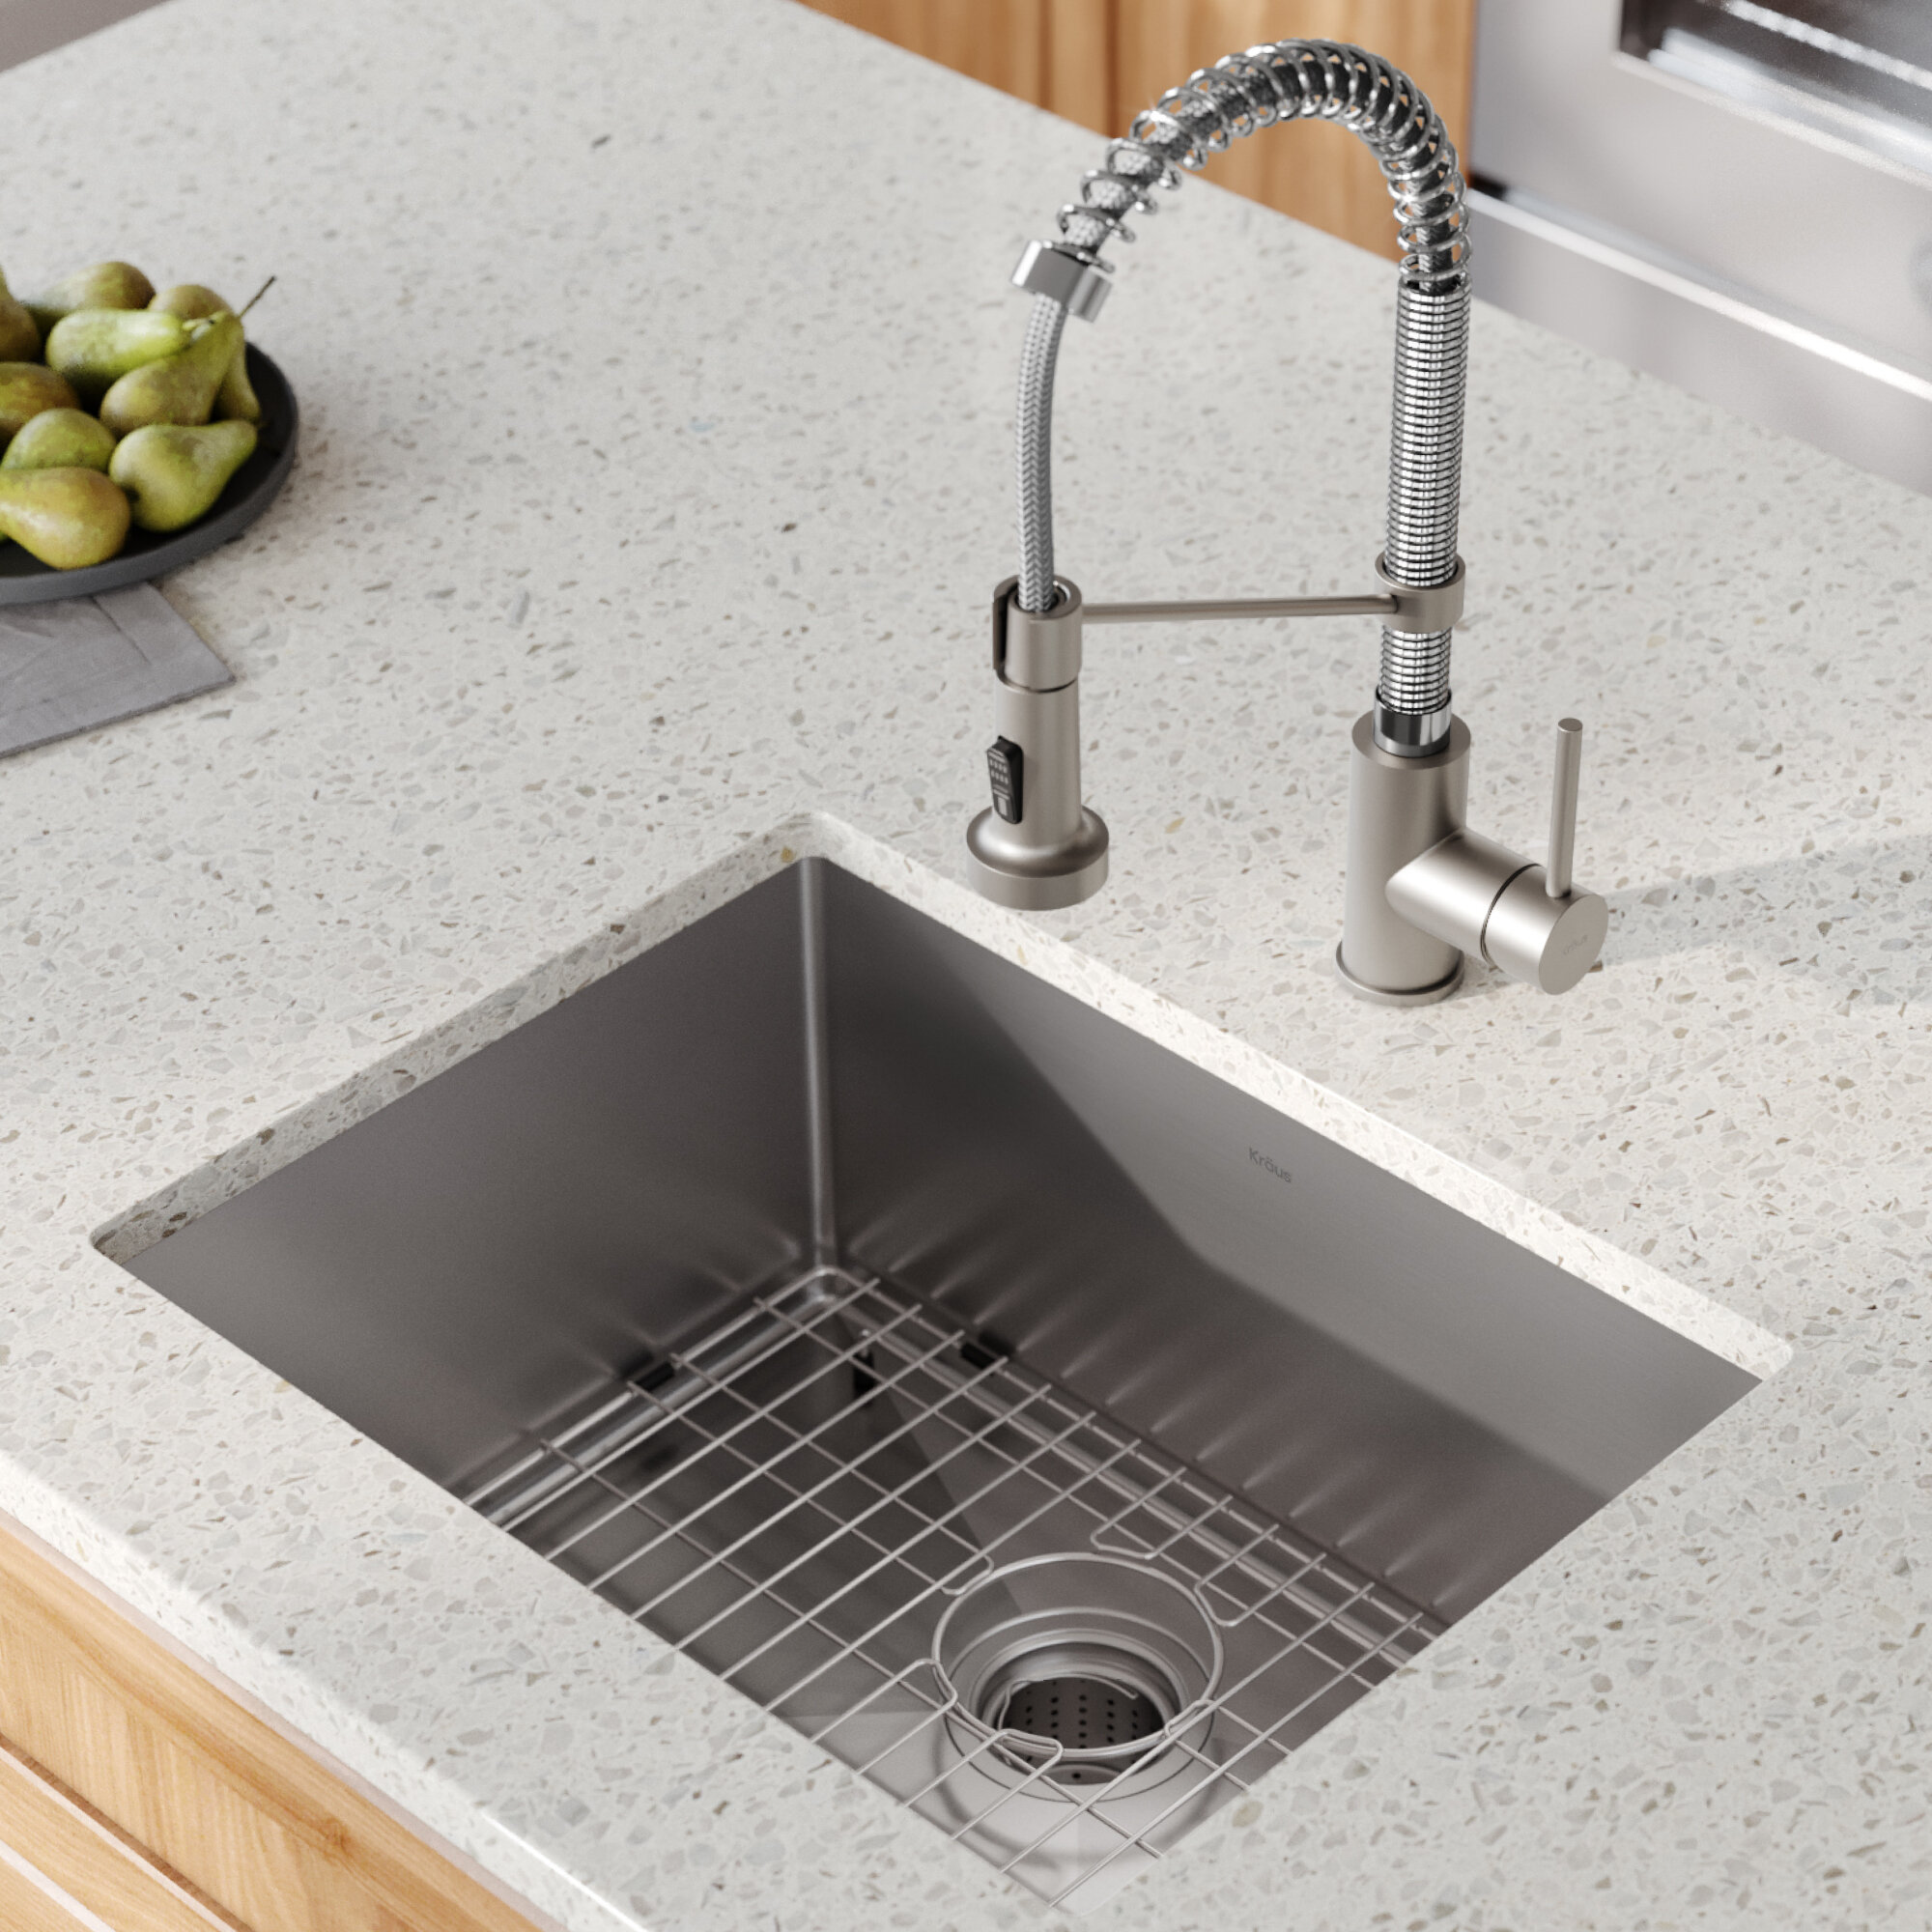 Kraus Standart Pro 23 L X 18 W Undermount Kitchen Sink With